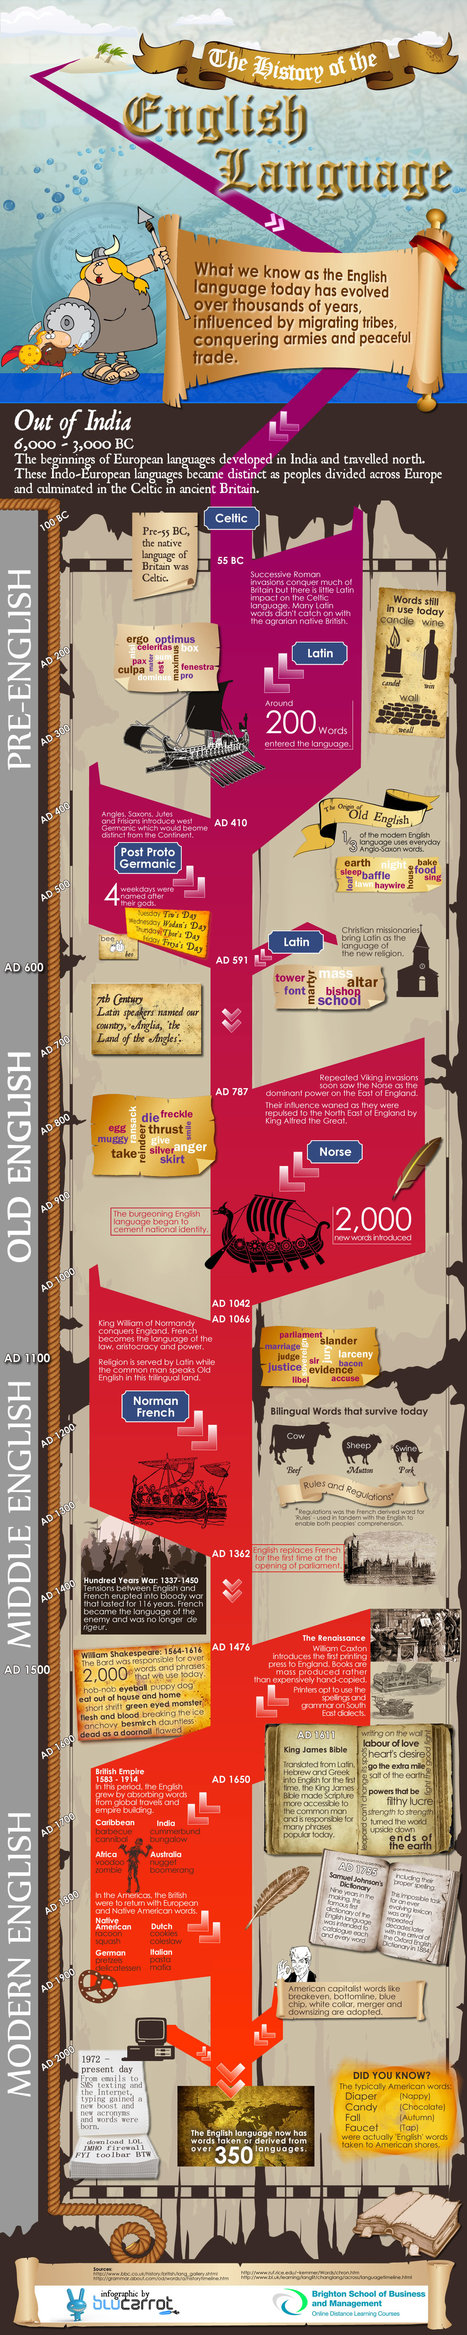 The History of the English Language - Infographic | IELTS, ESP, EAP and CALL | Scoop.it